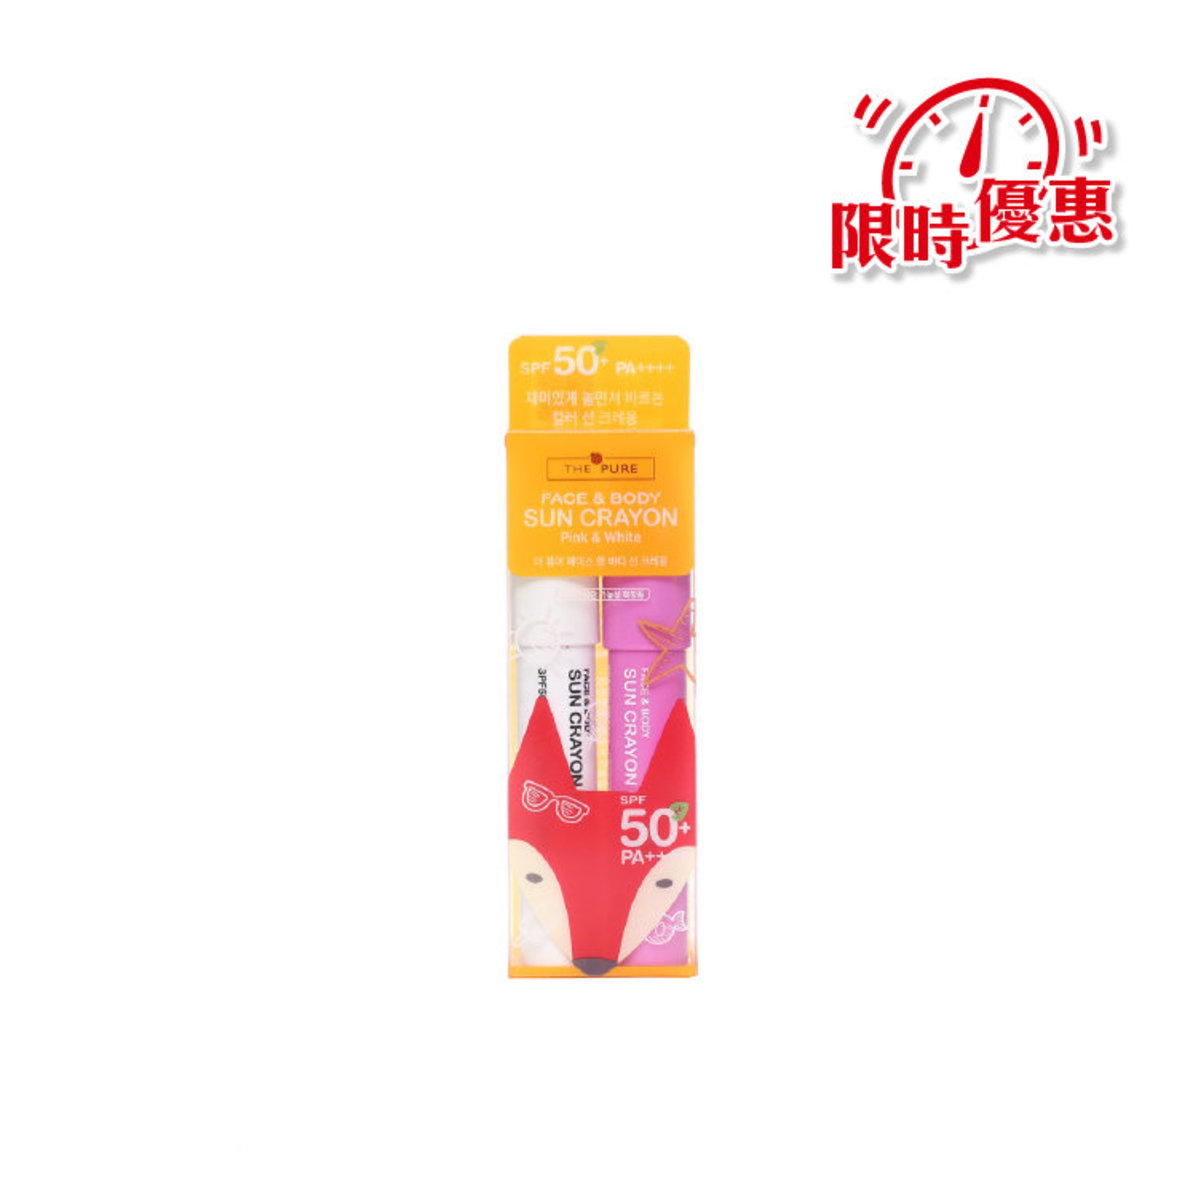 The Pure Face & Body Sun Crayon Pink & White (Suitable for 3 years+)